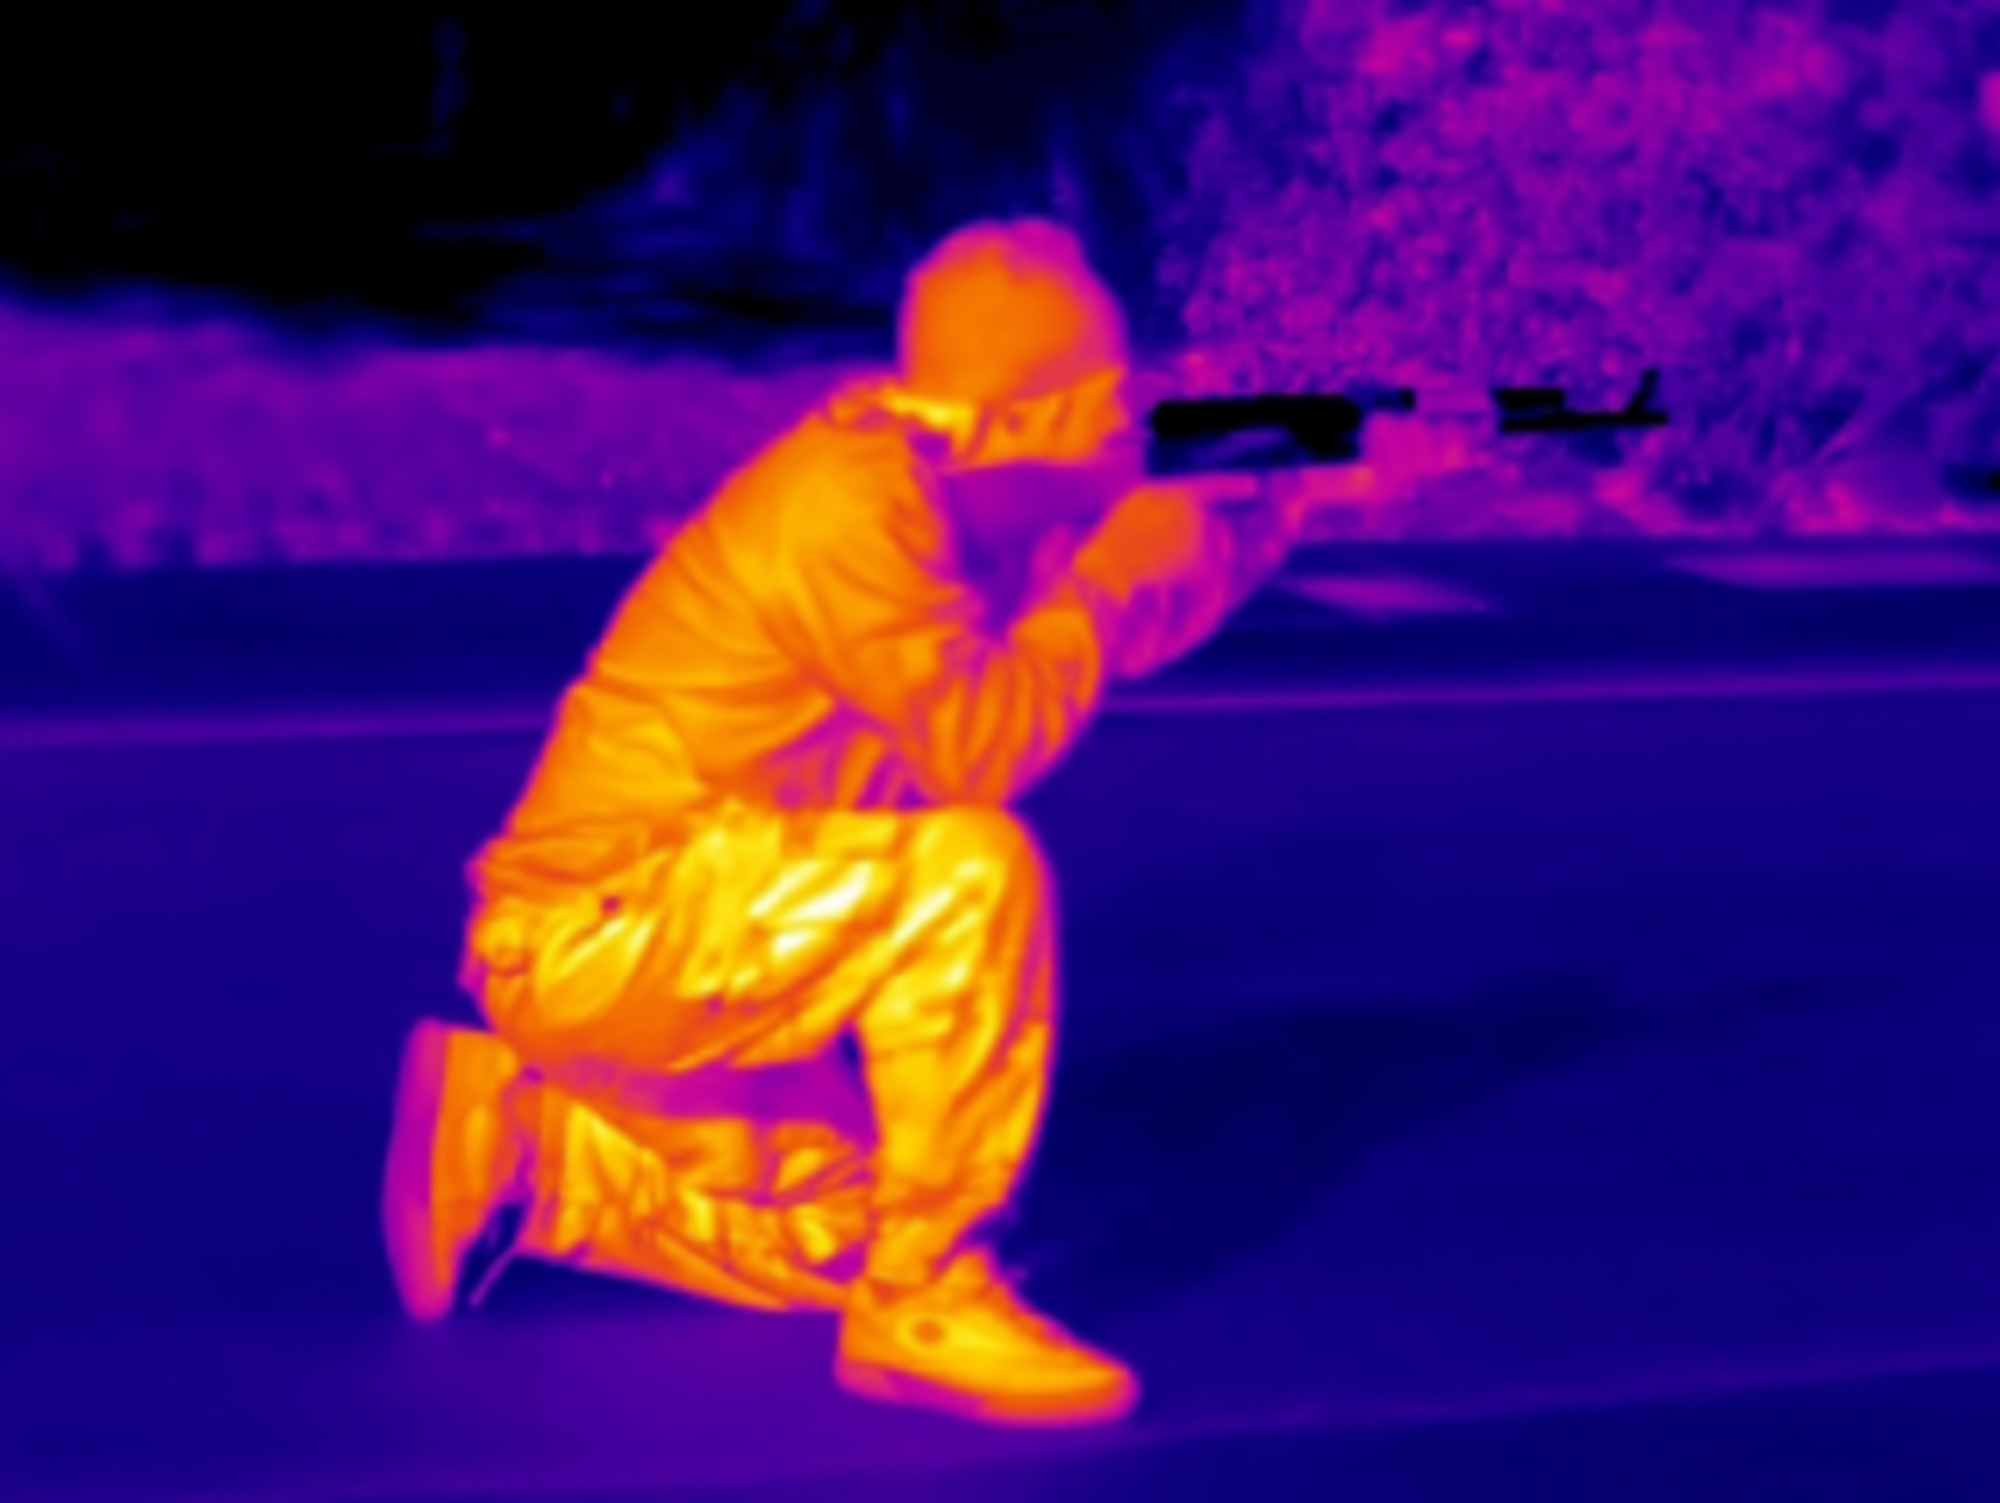 A thermal image of a man with a gun